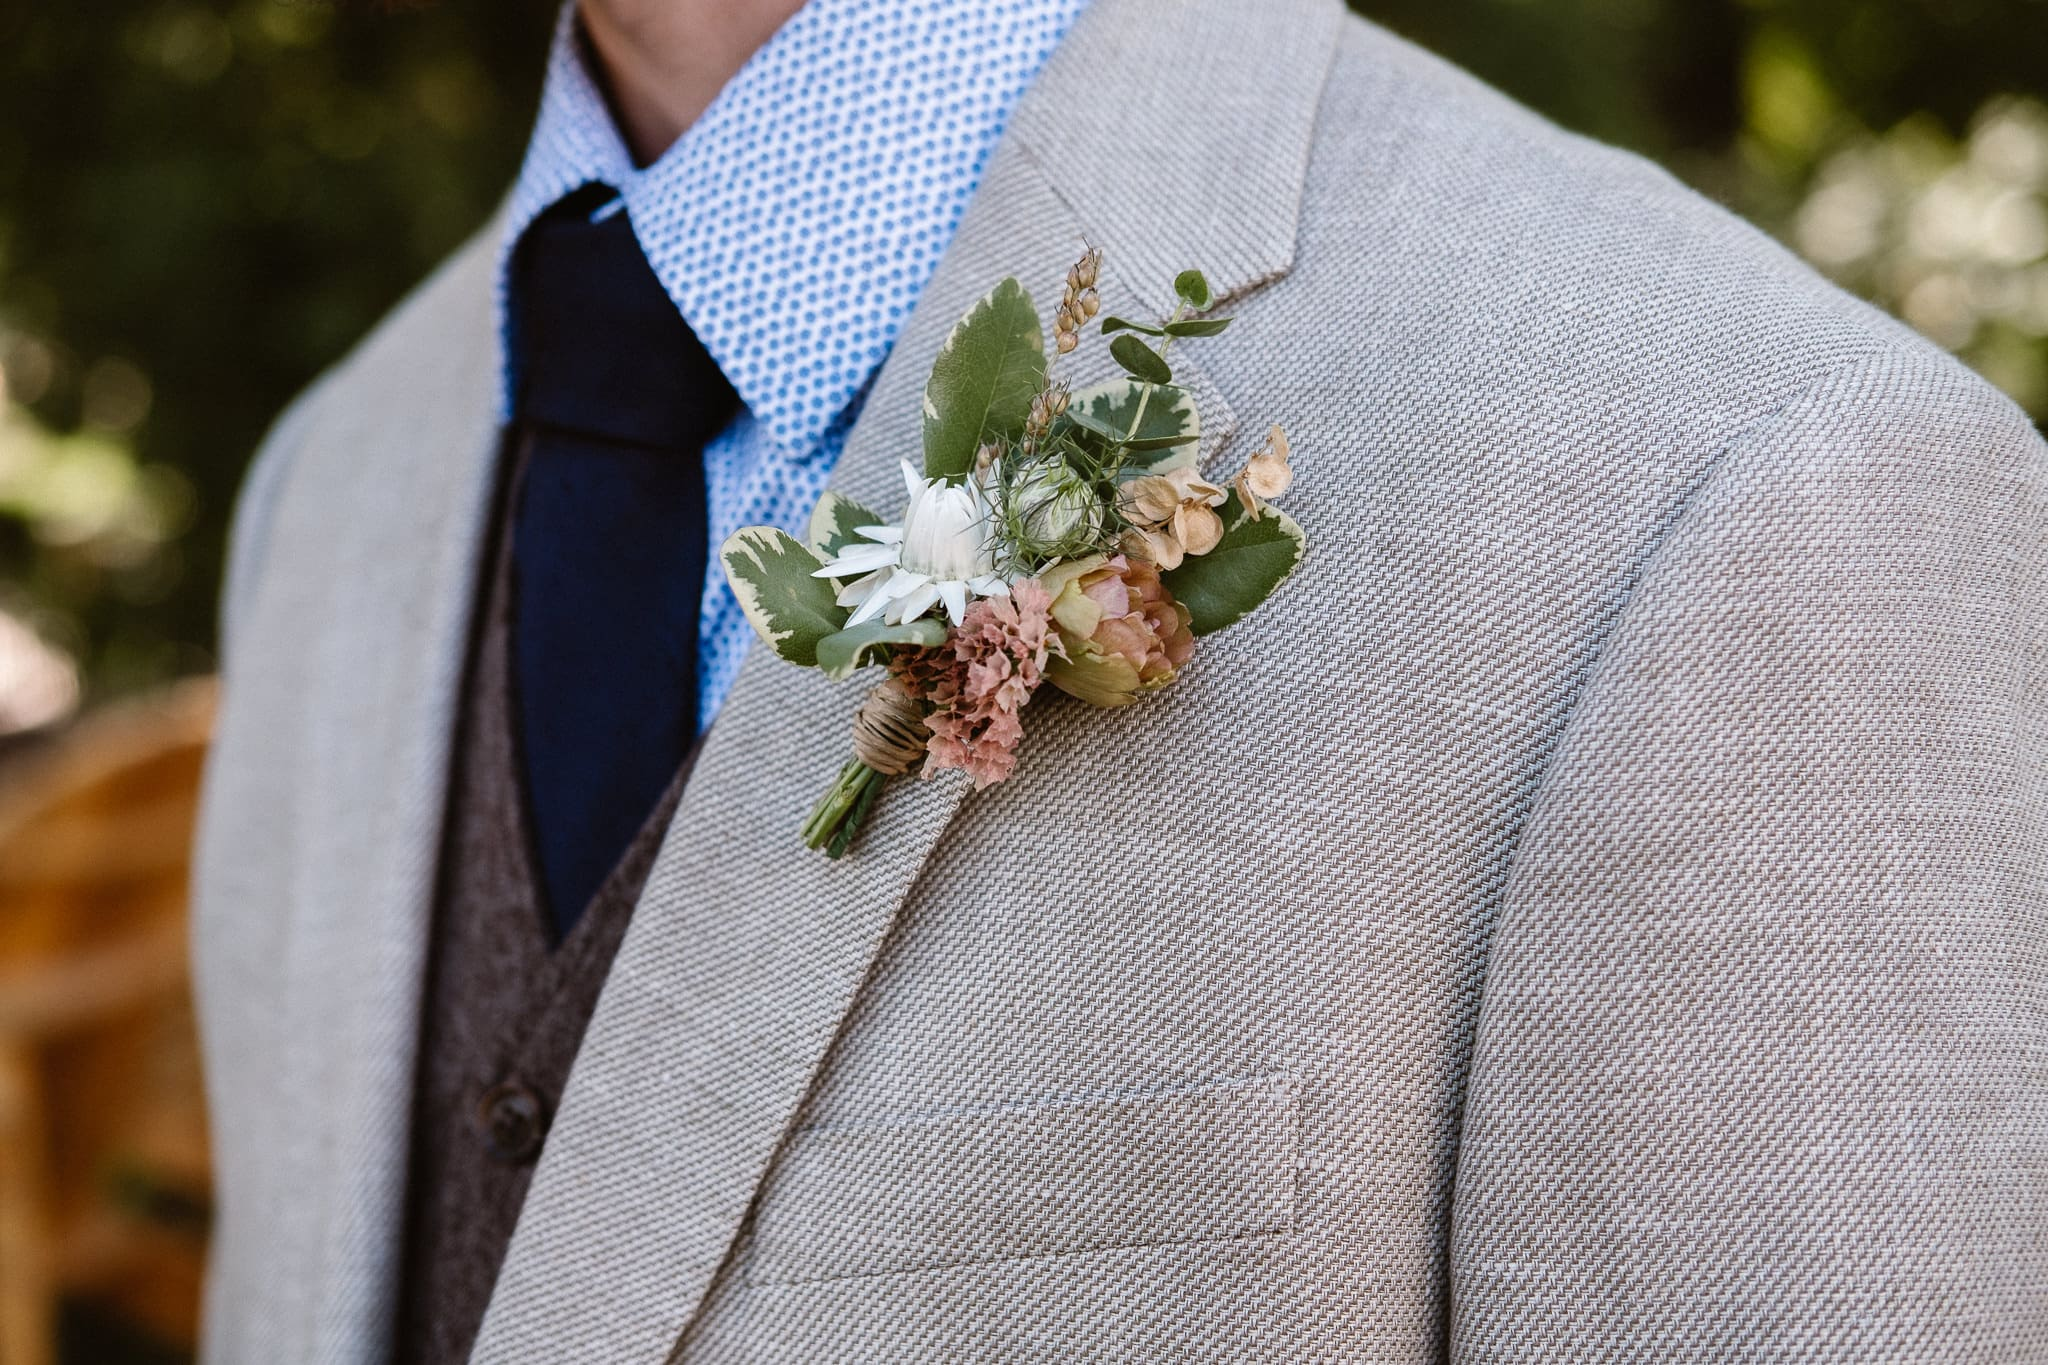 Lyons Farmette wedding photographer, Colorado intimate wedding photographer, groom portrait, boutonniere by Farmette Flowers